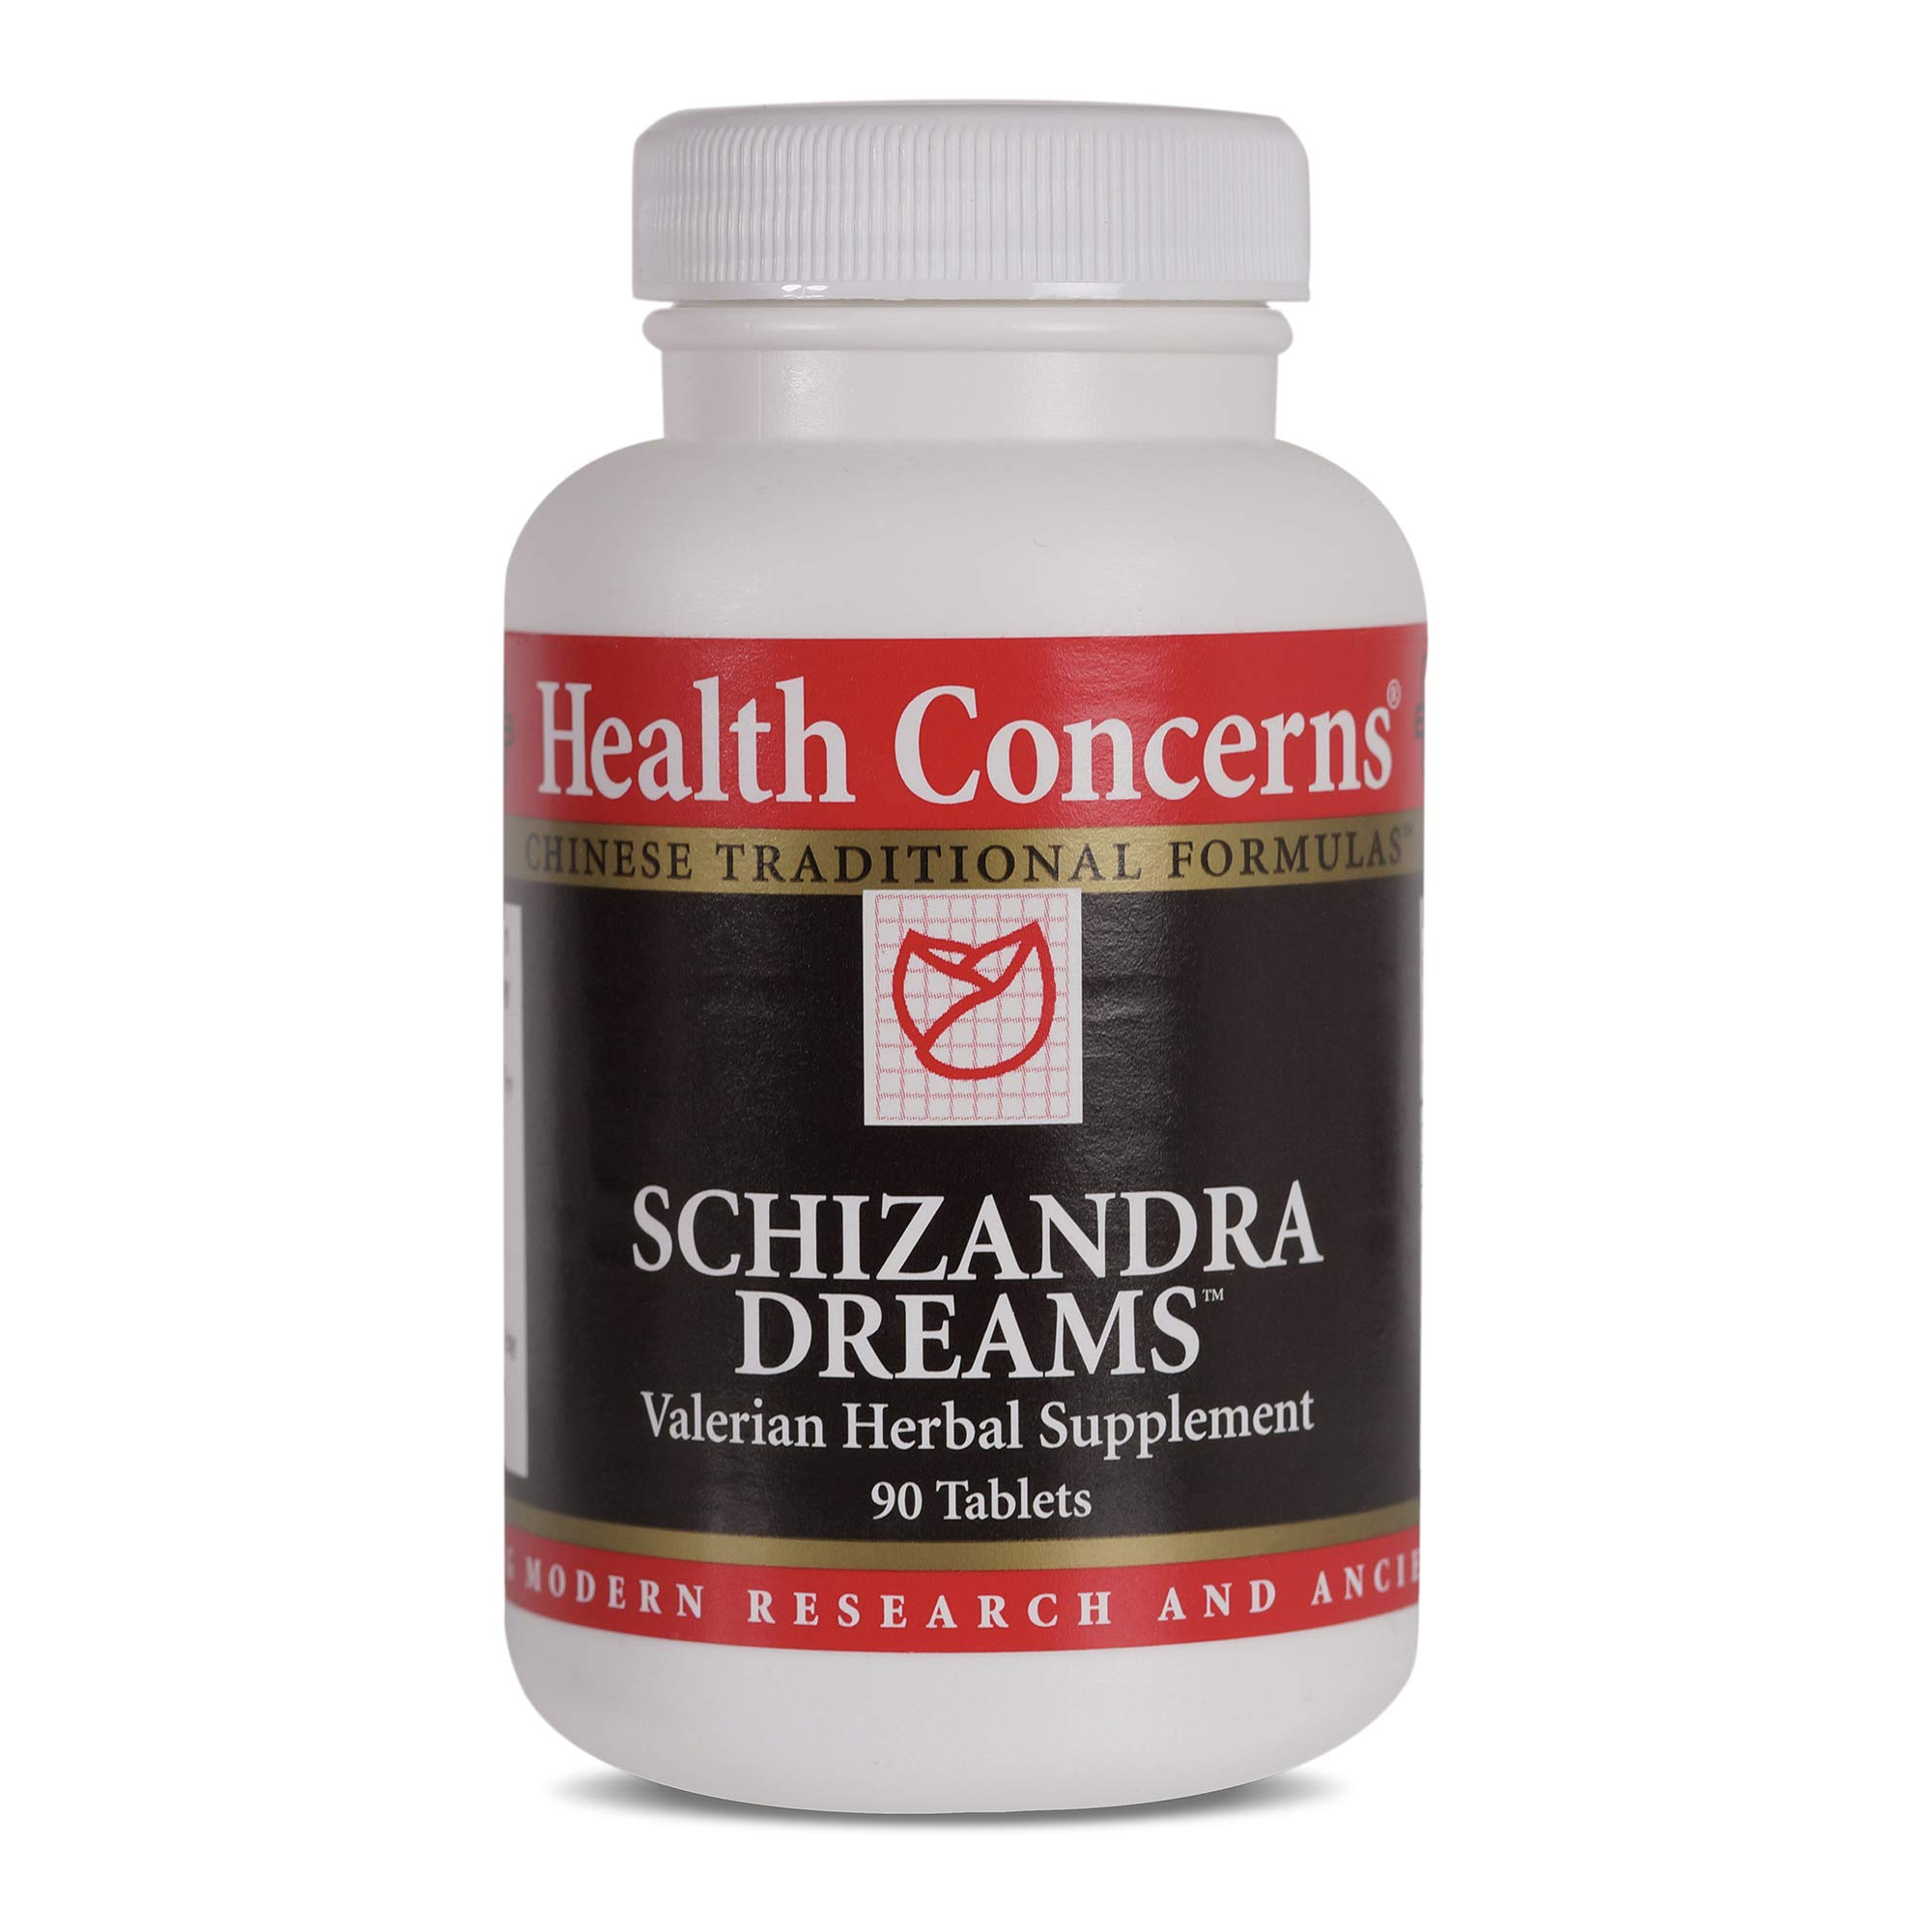 Health Concerns - Schizandra Dreams - Valerian Herbal Supplement - 90 Tablets